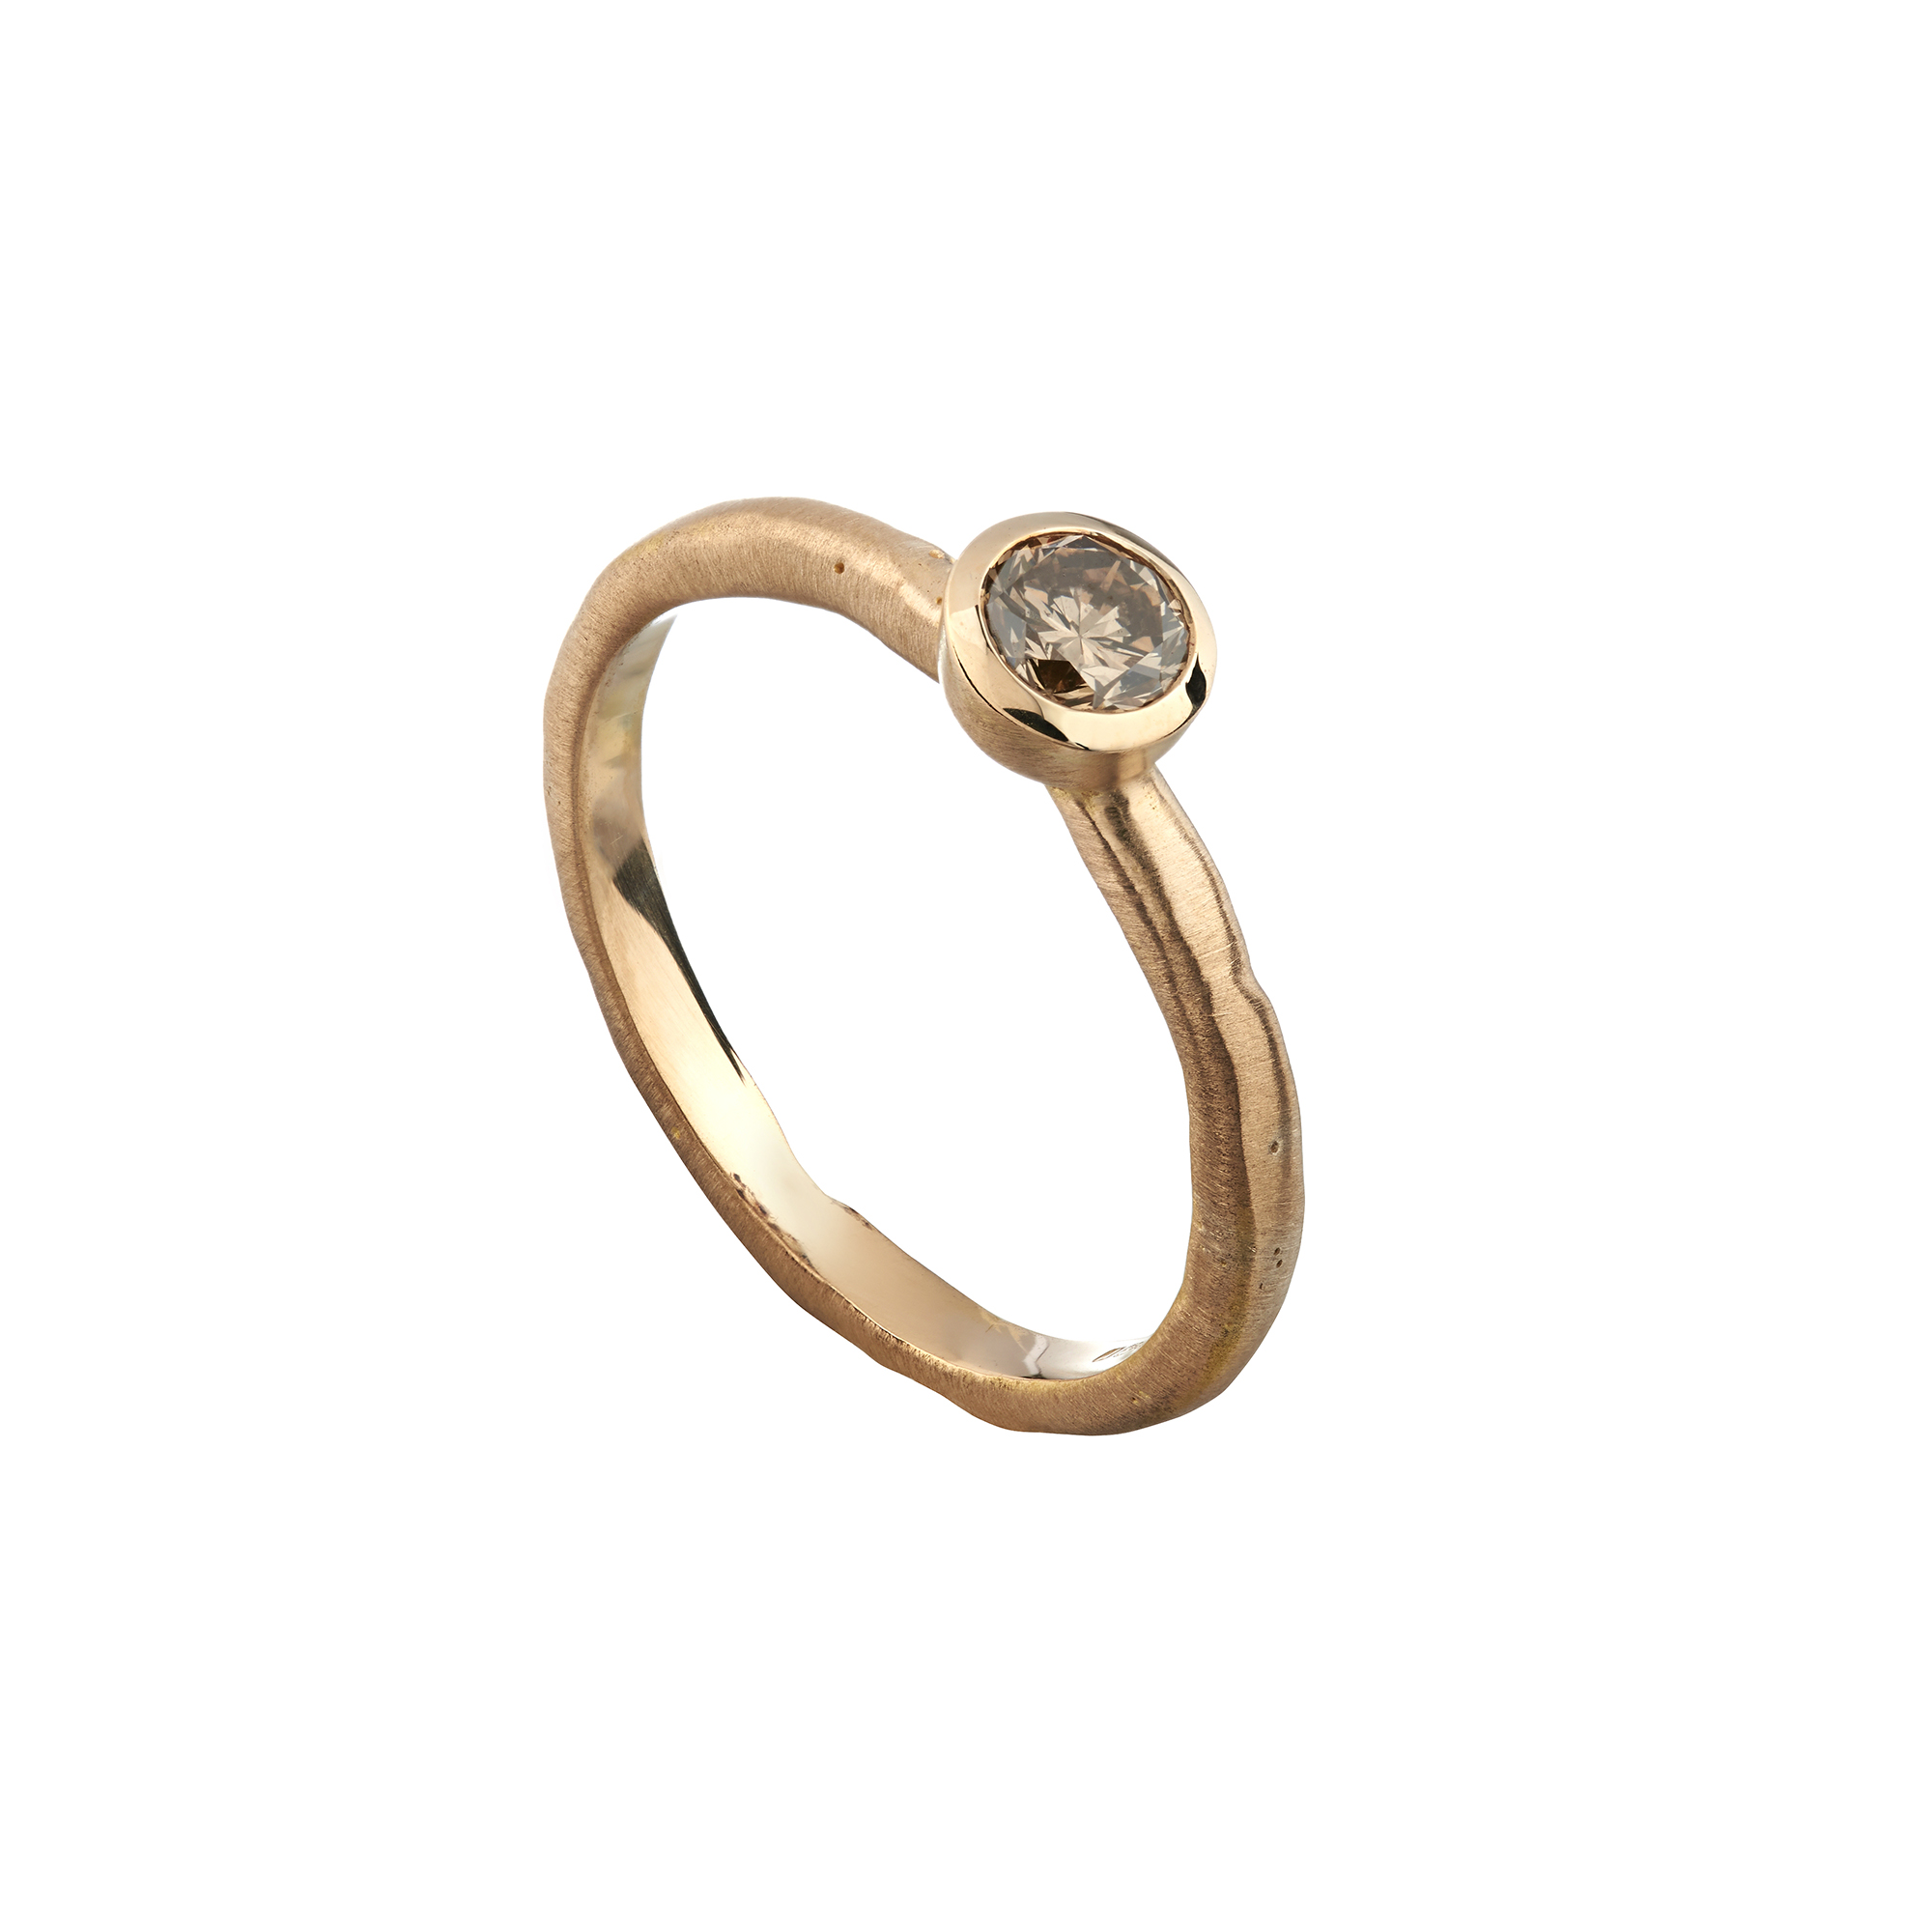 bespoke rings unique in see our full ring pin roberts collection of fairfax to engagement call